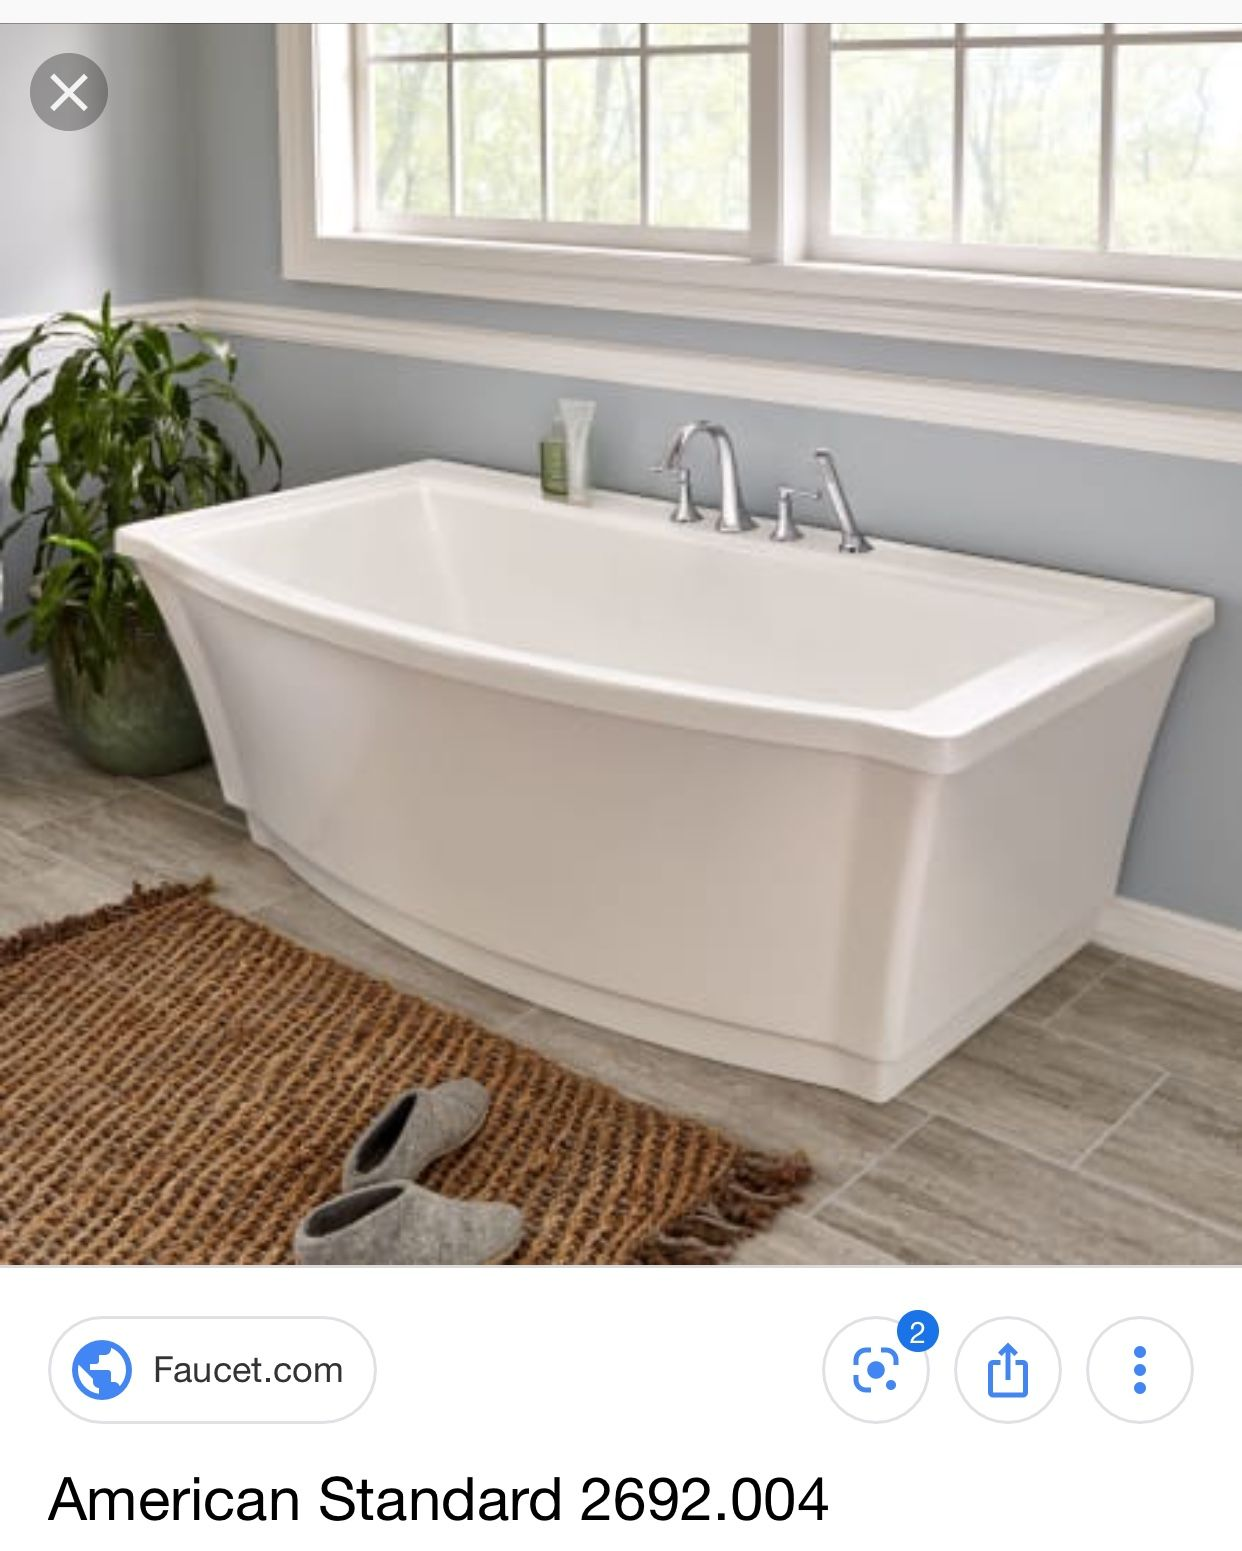 Pin By Jodie Serwe On House Ideas Free Standing Bath Tub